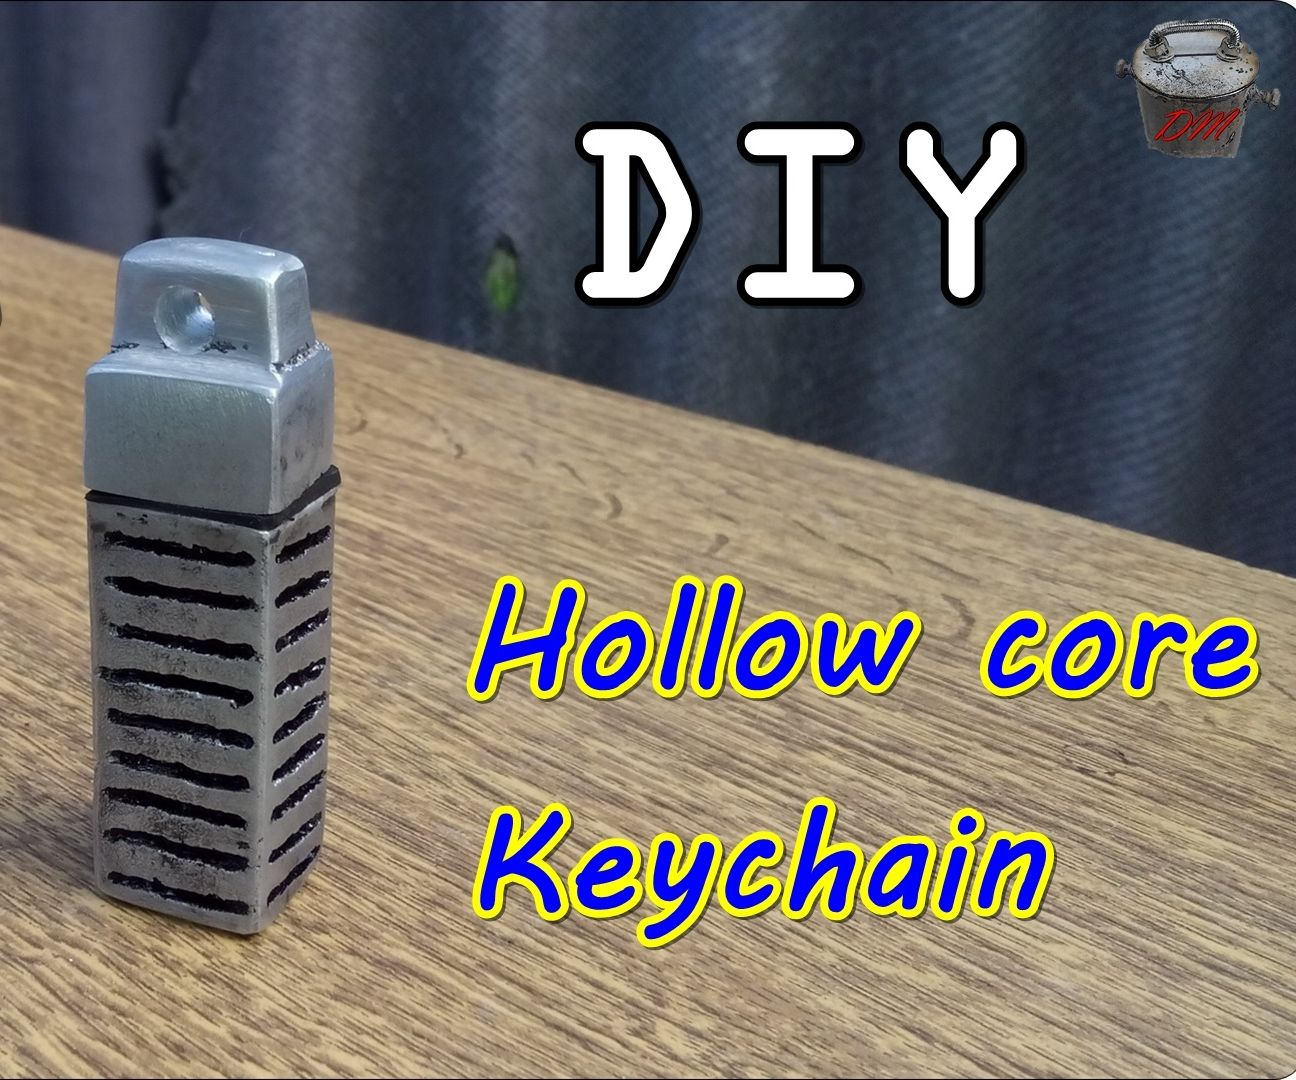 Hollow Core Keychain. DIY - Casting Aluminum at Home